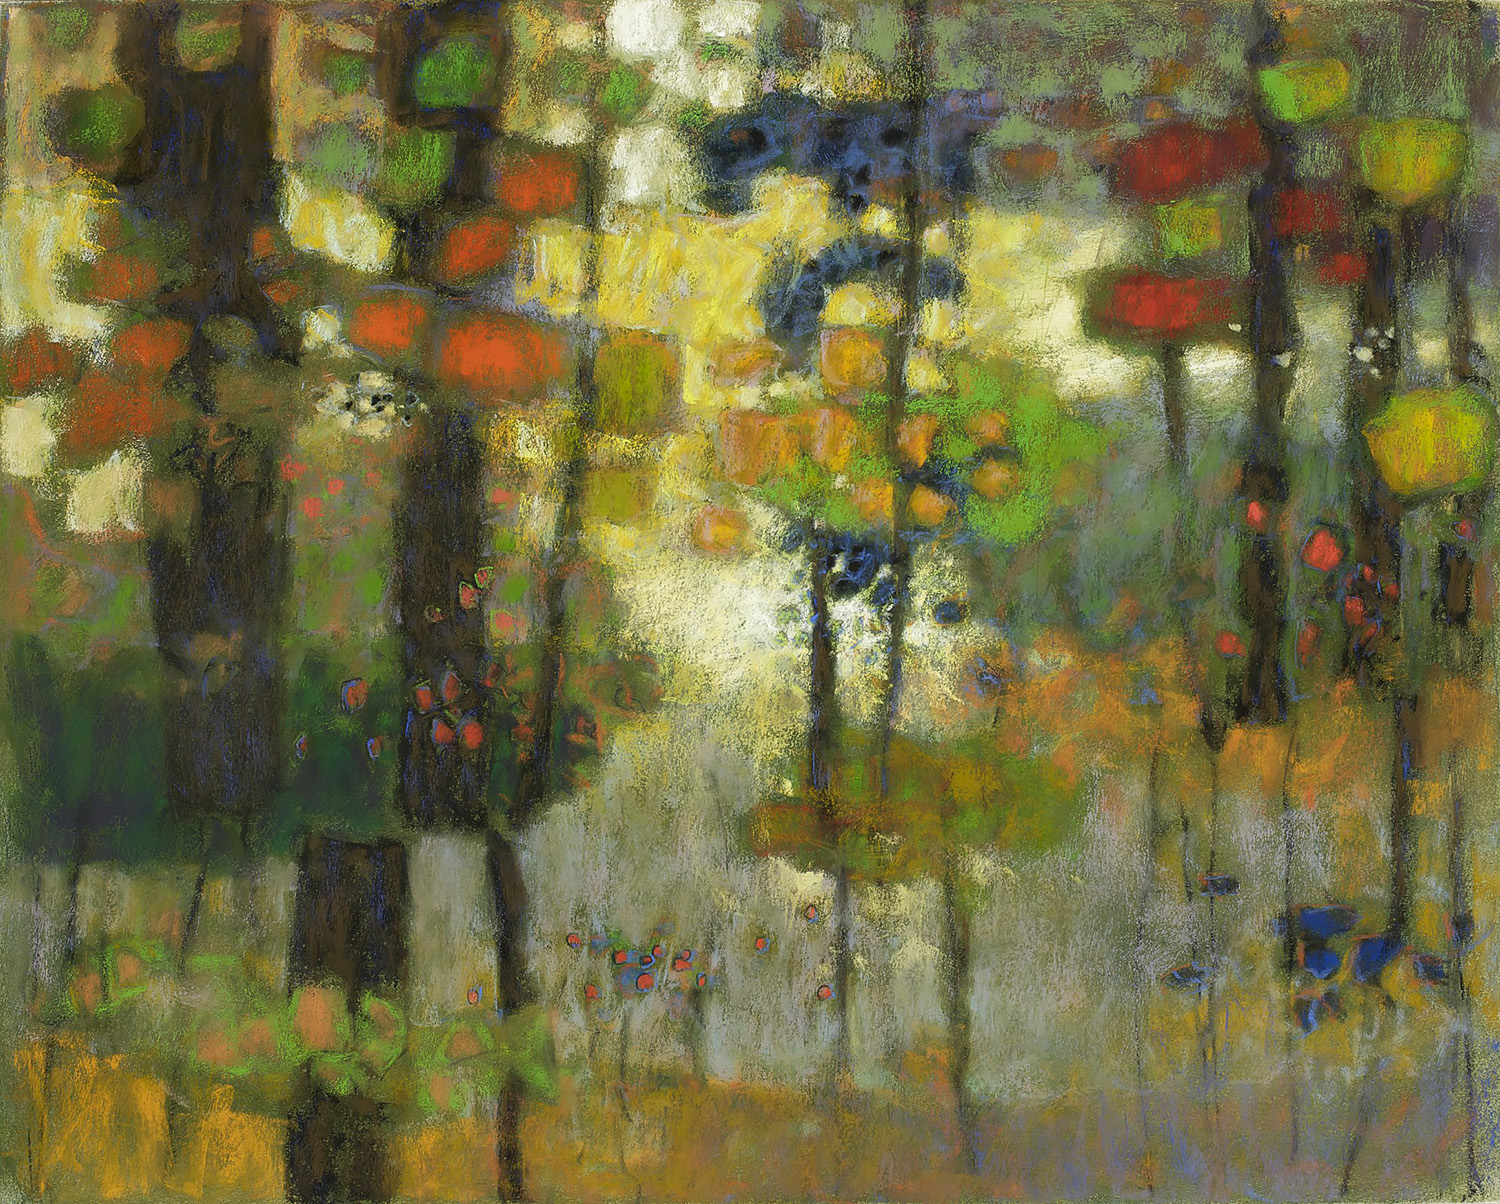 Where Spirits Dwell  | pastel on paper | 24 x 30"